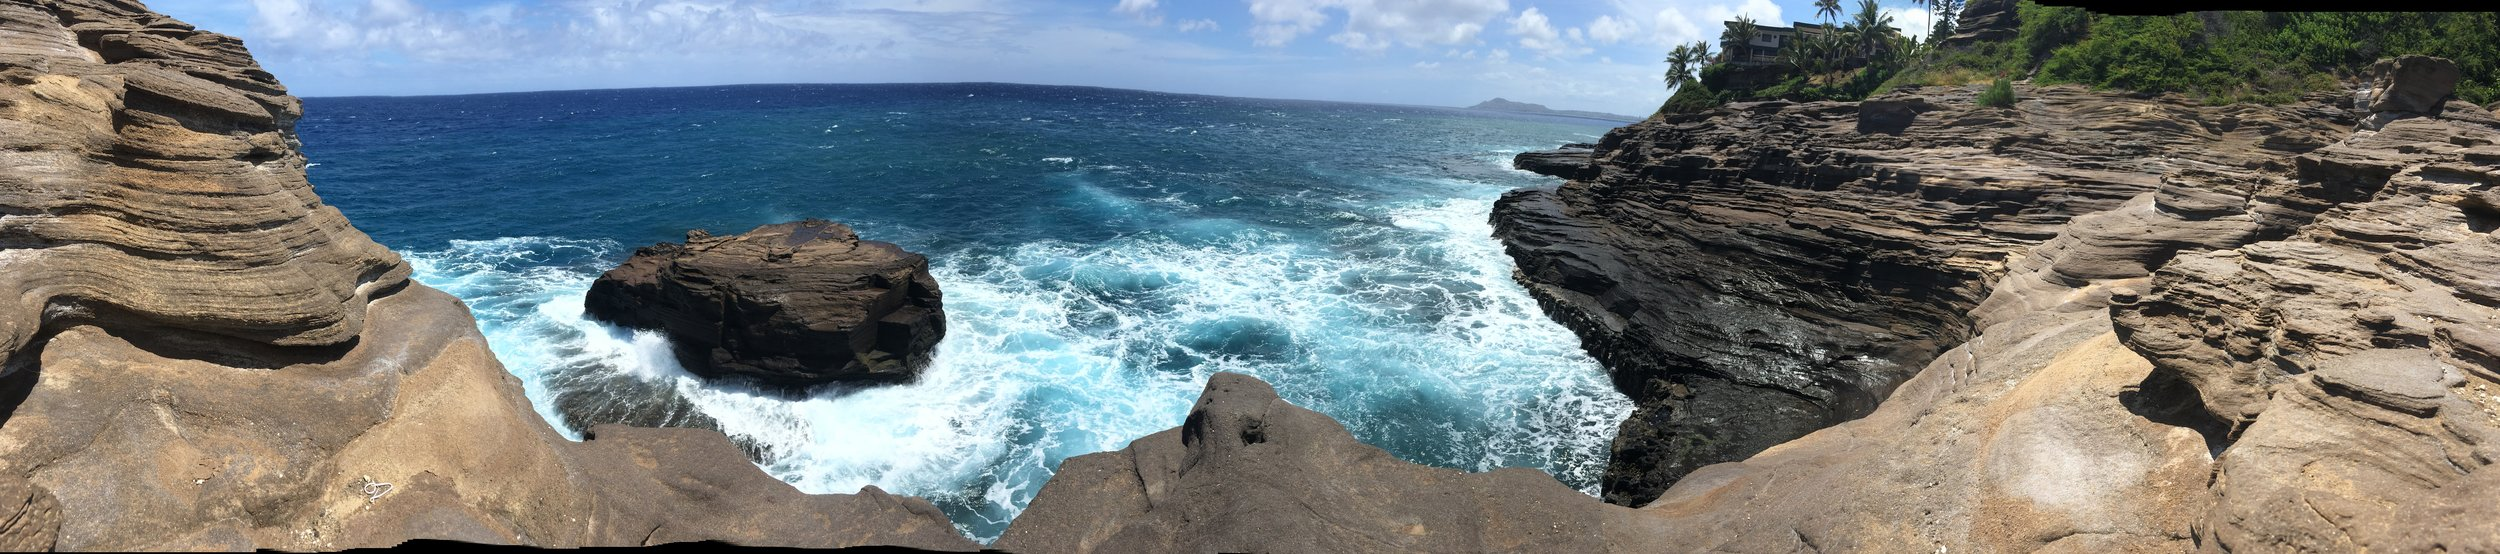 Spitting Caves on the island of Oahu.